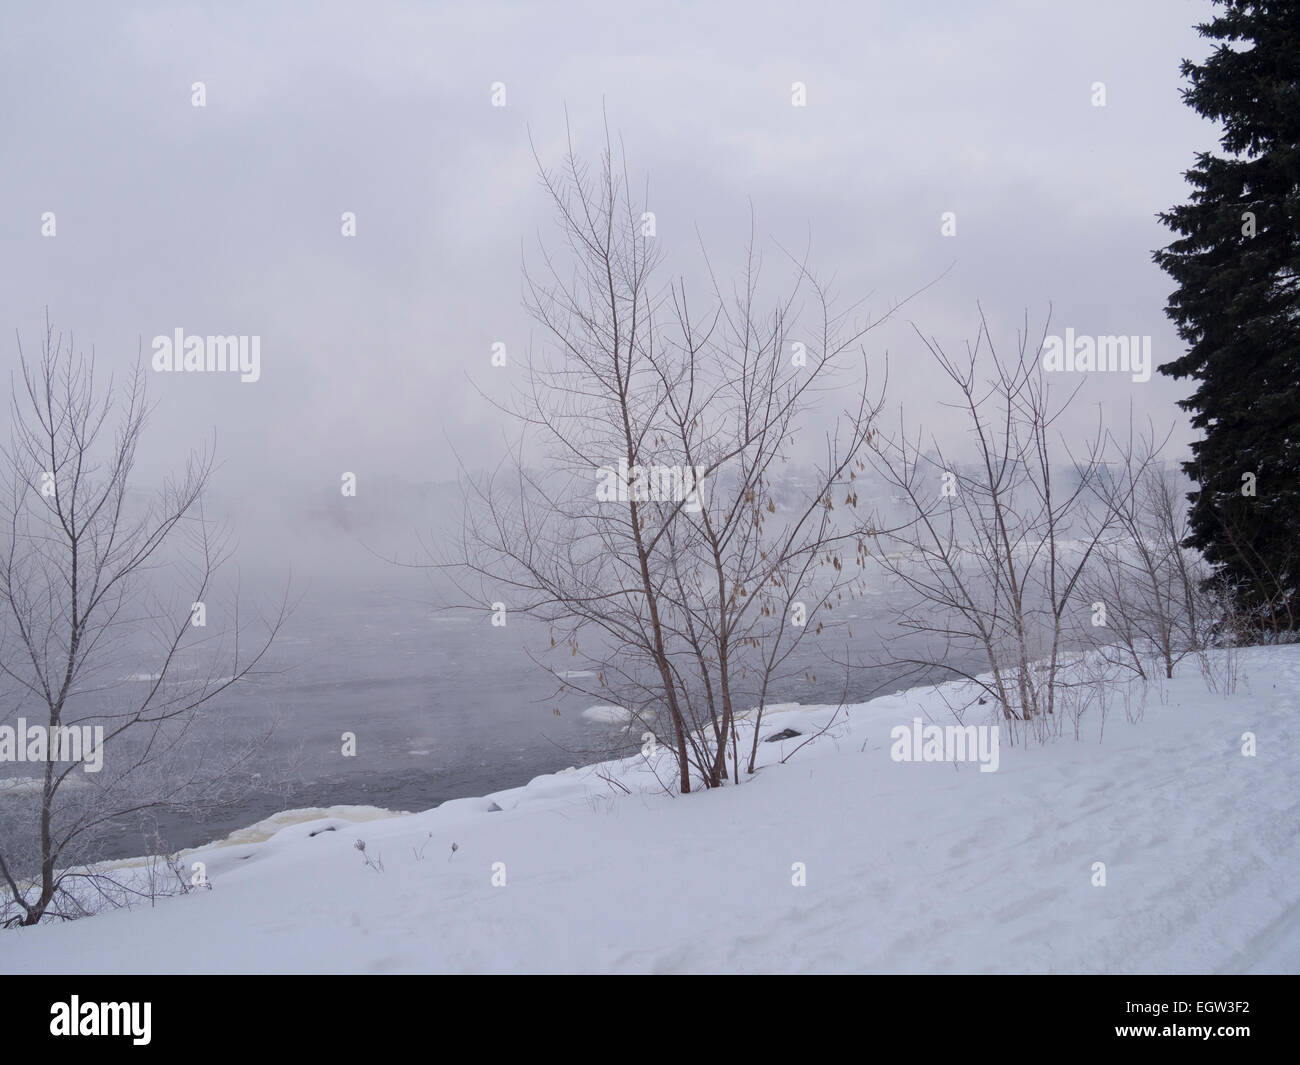 Fog on the river on an overcast day in winter - Stock Image